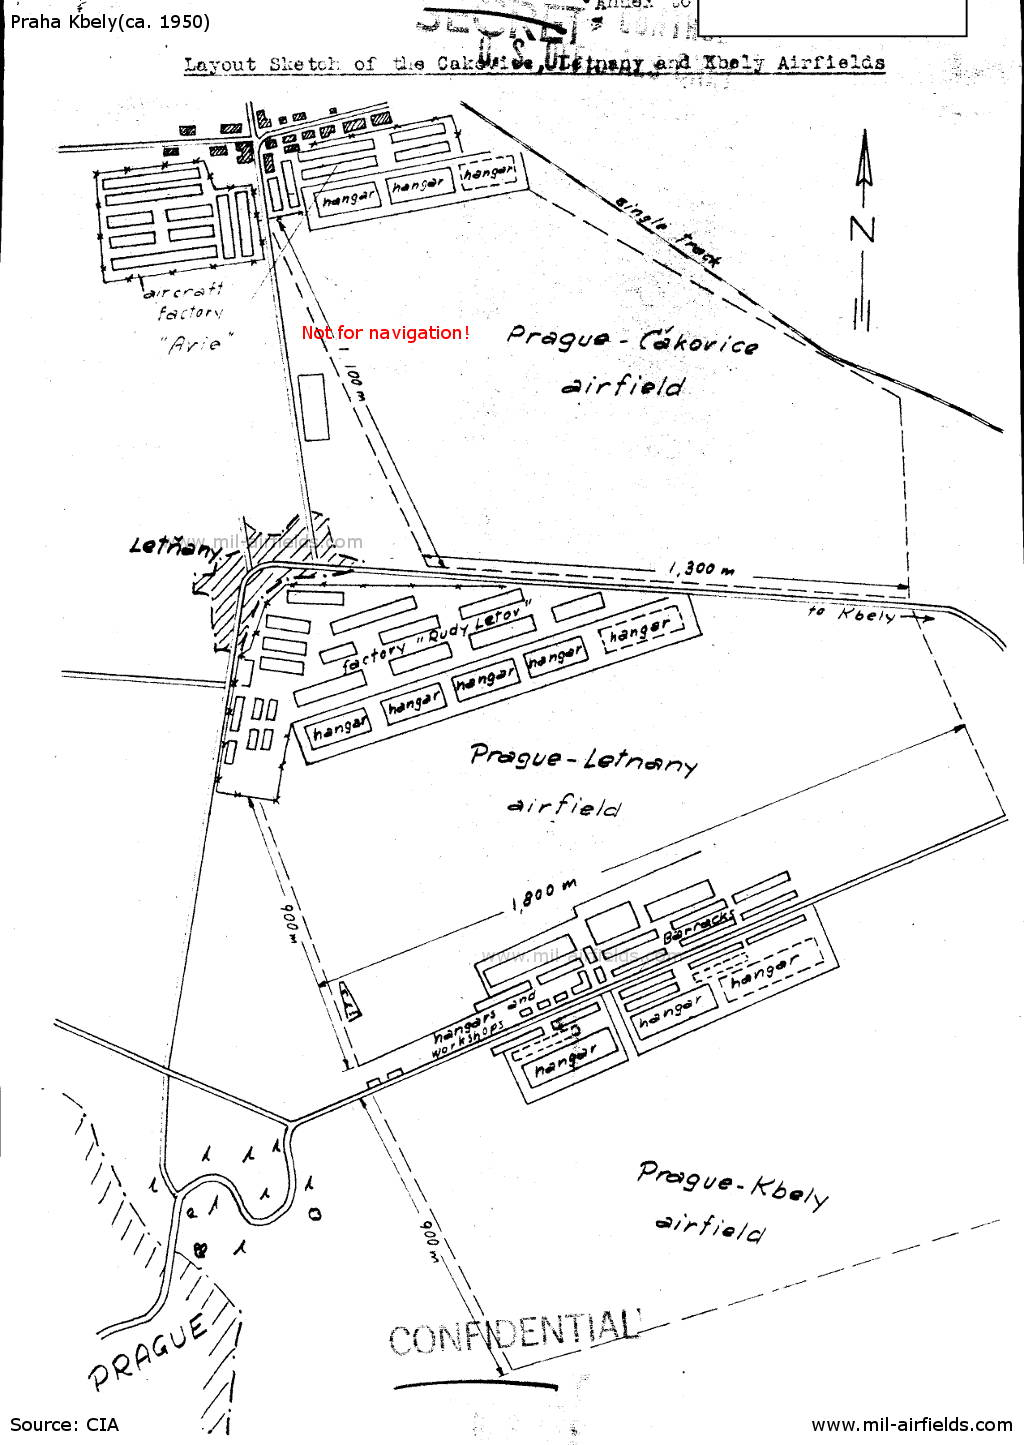 Sketch of the three adjoining airfields Praha Čakovice, Letňany and Kbely